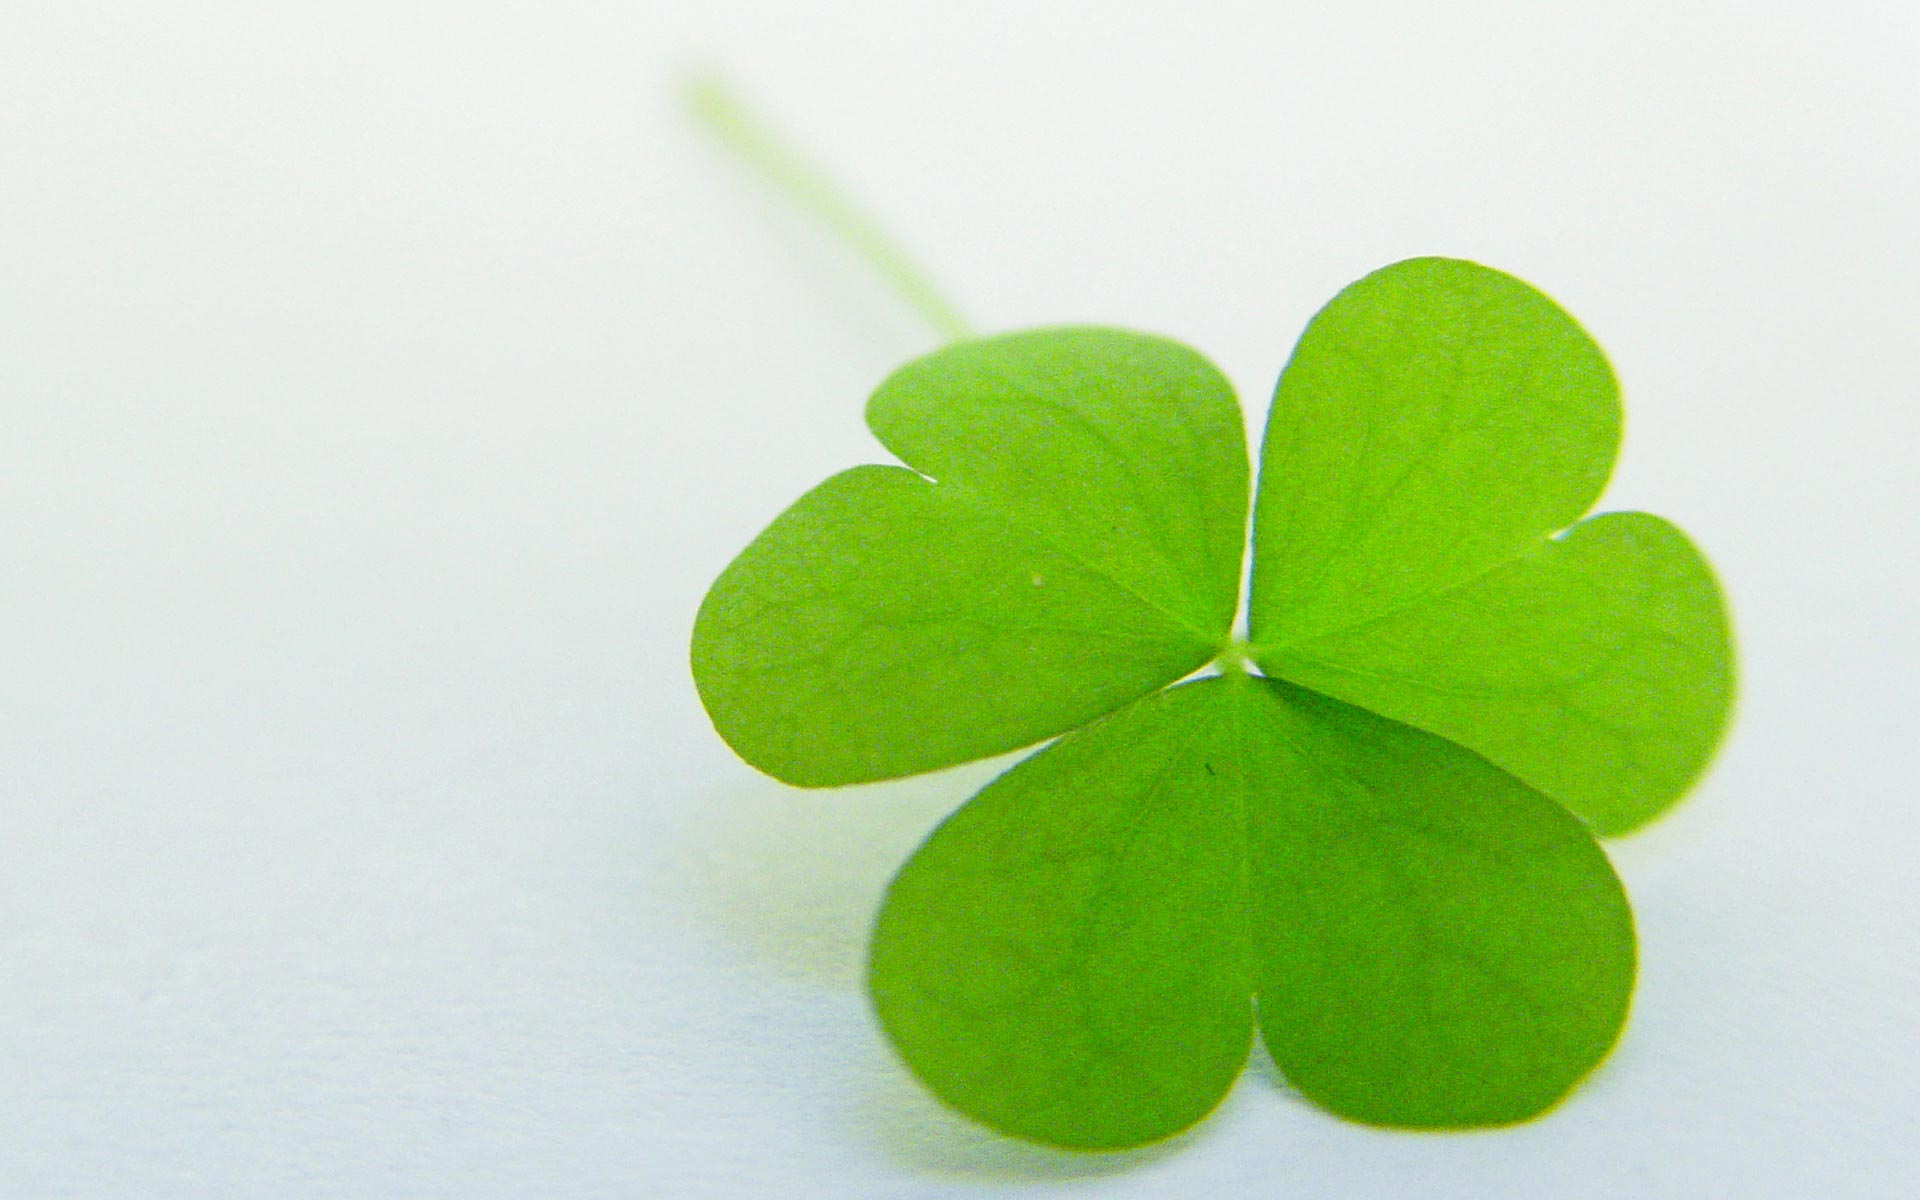 quick loans ireland 4 leaf clover green shamrock